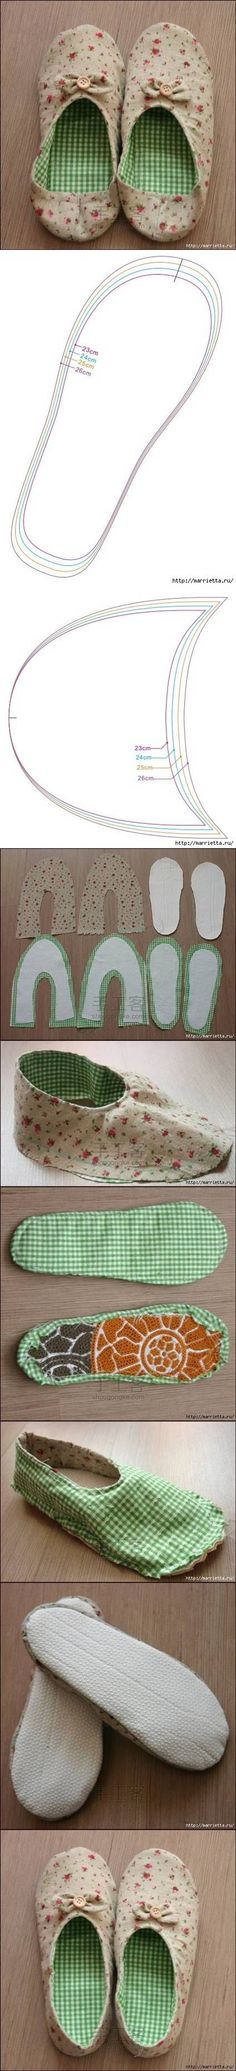 How to make Womens House Slippers DIY tutorial instructions / How To Instructions